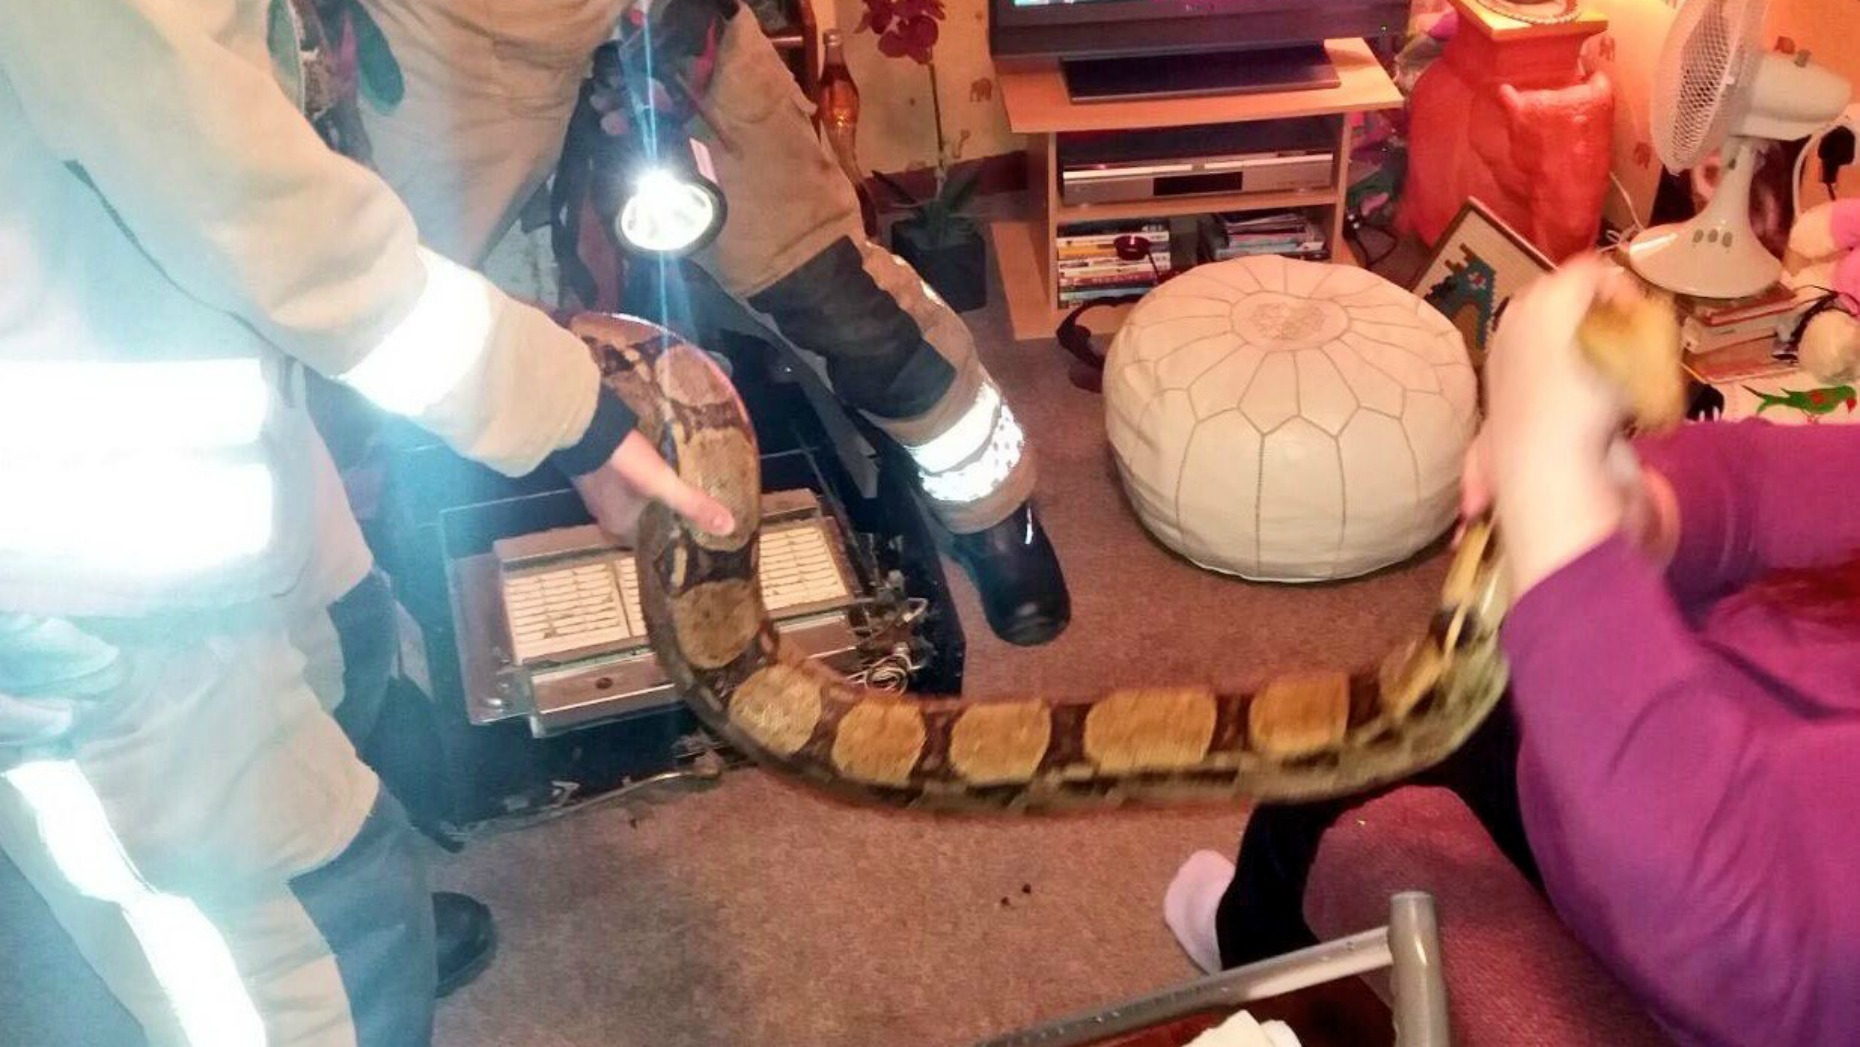 The 8ft long snake had become trapped in parts of the fire. Photo: Gainsborough Fire and Rescue